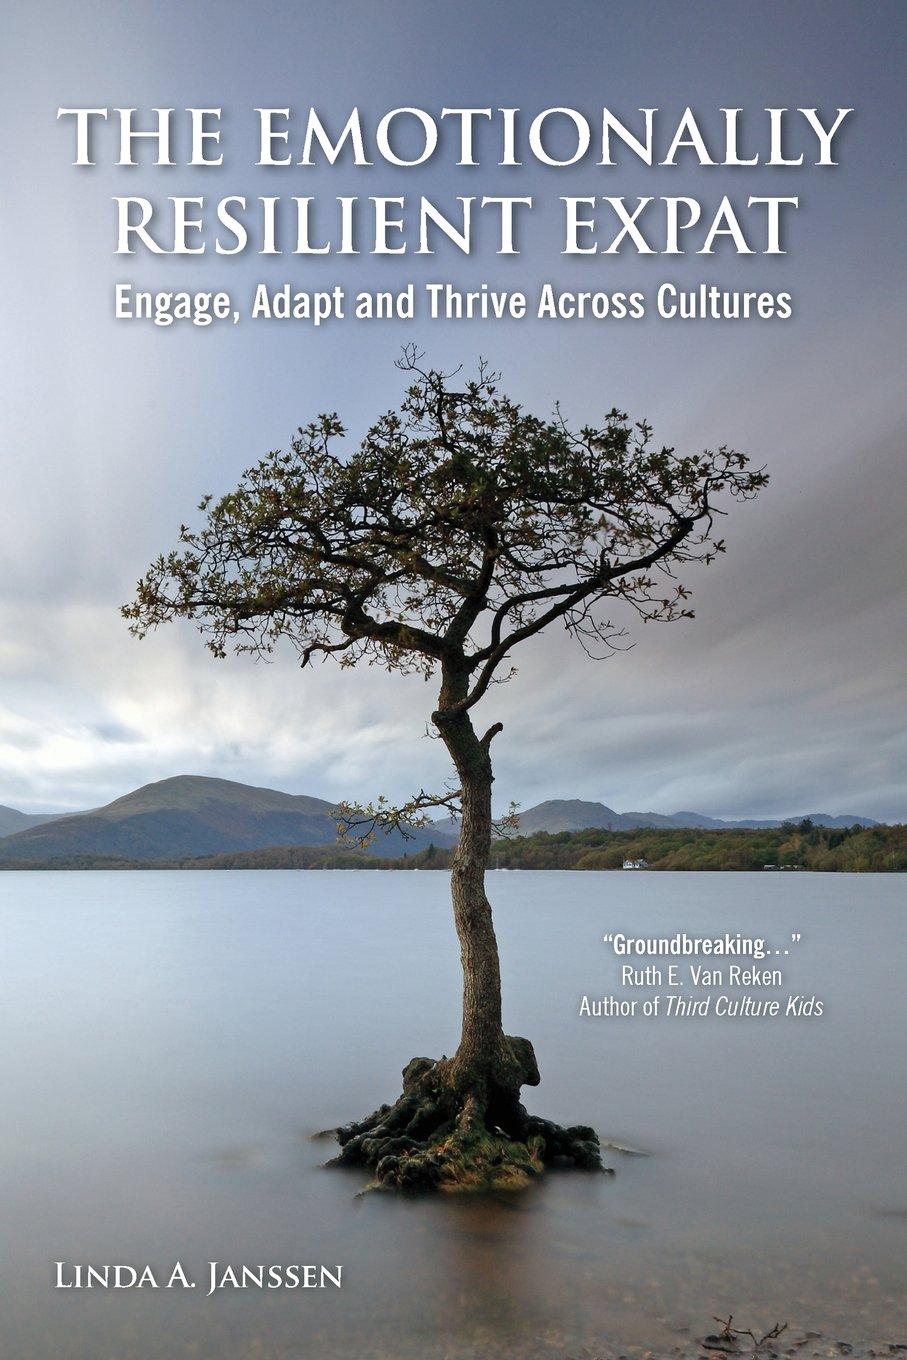 Download The Emotionally Resilient Expat - Engage, Adapt and Thrive Across Cultures ebook